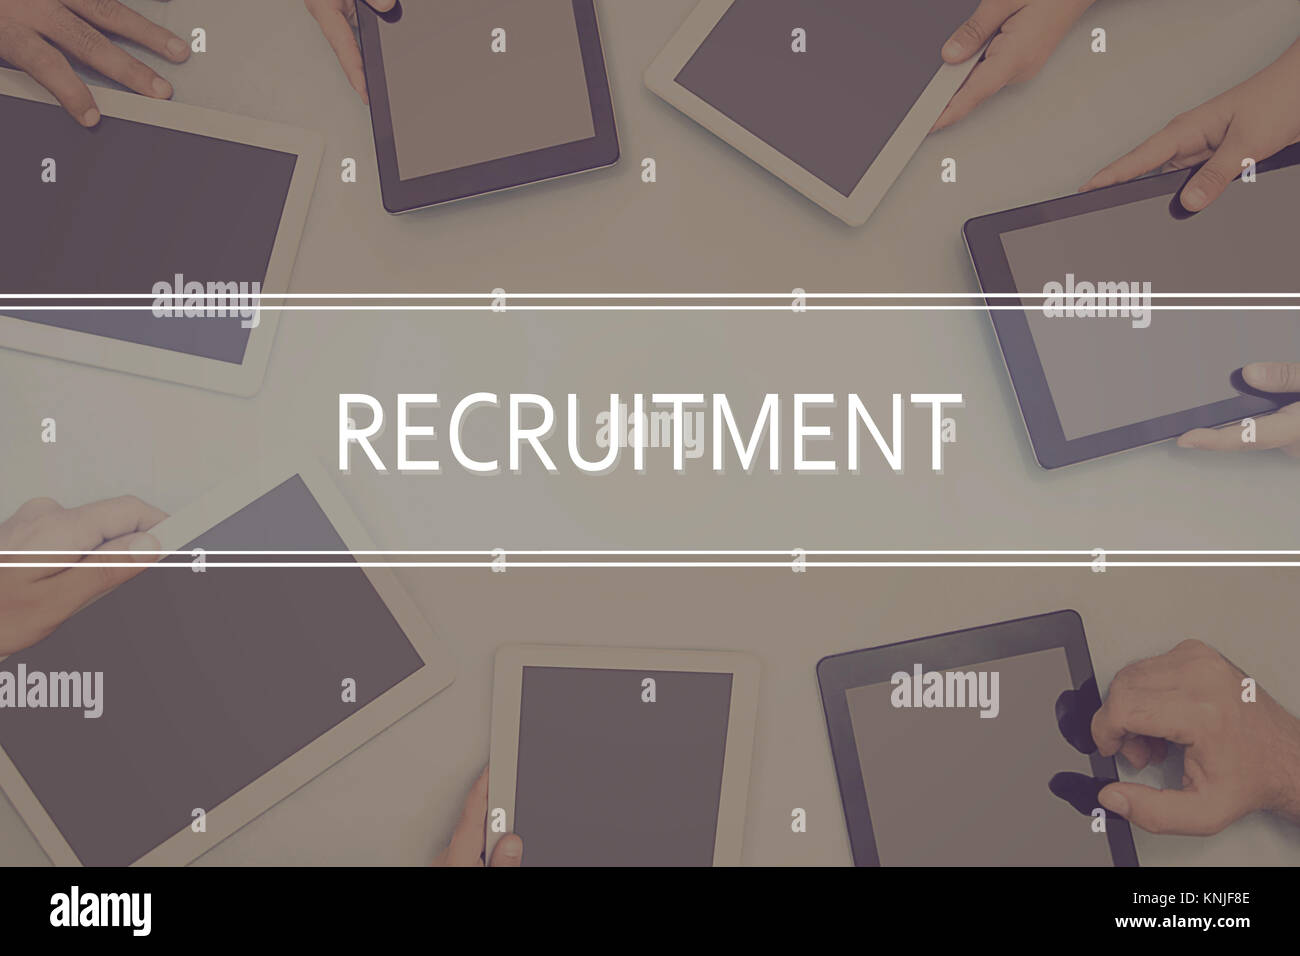 RECRUITMENT CONCEPT Business Concept. - Stock Image